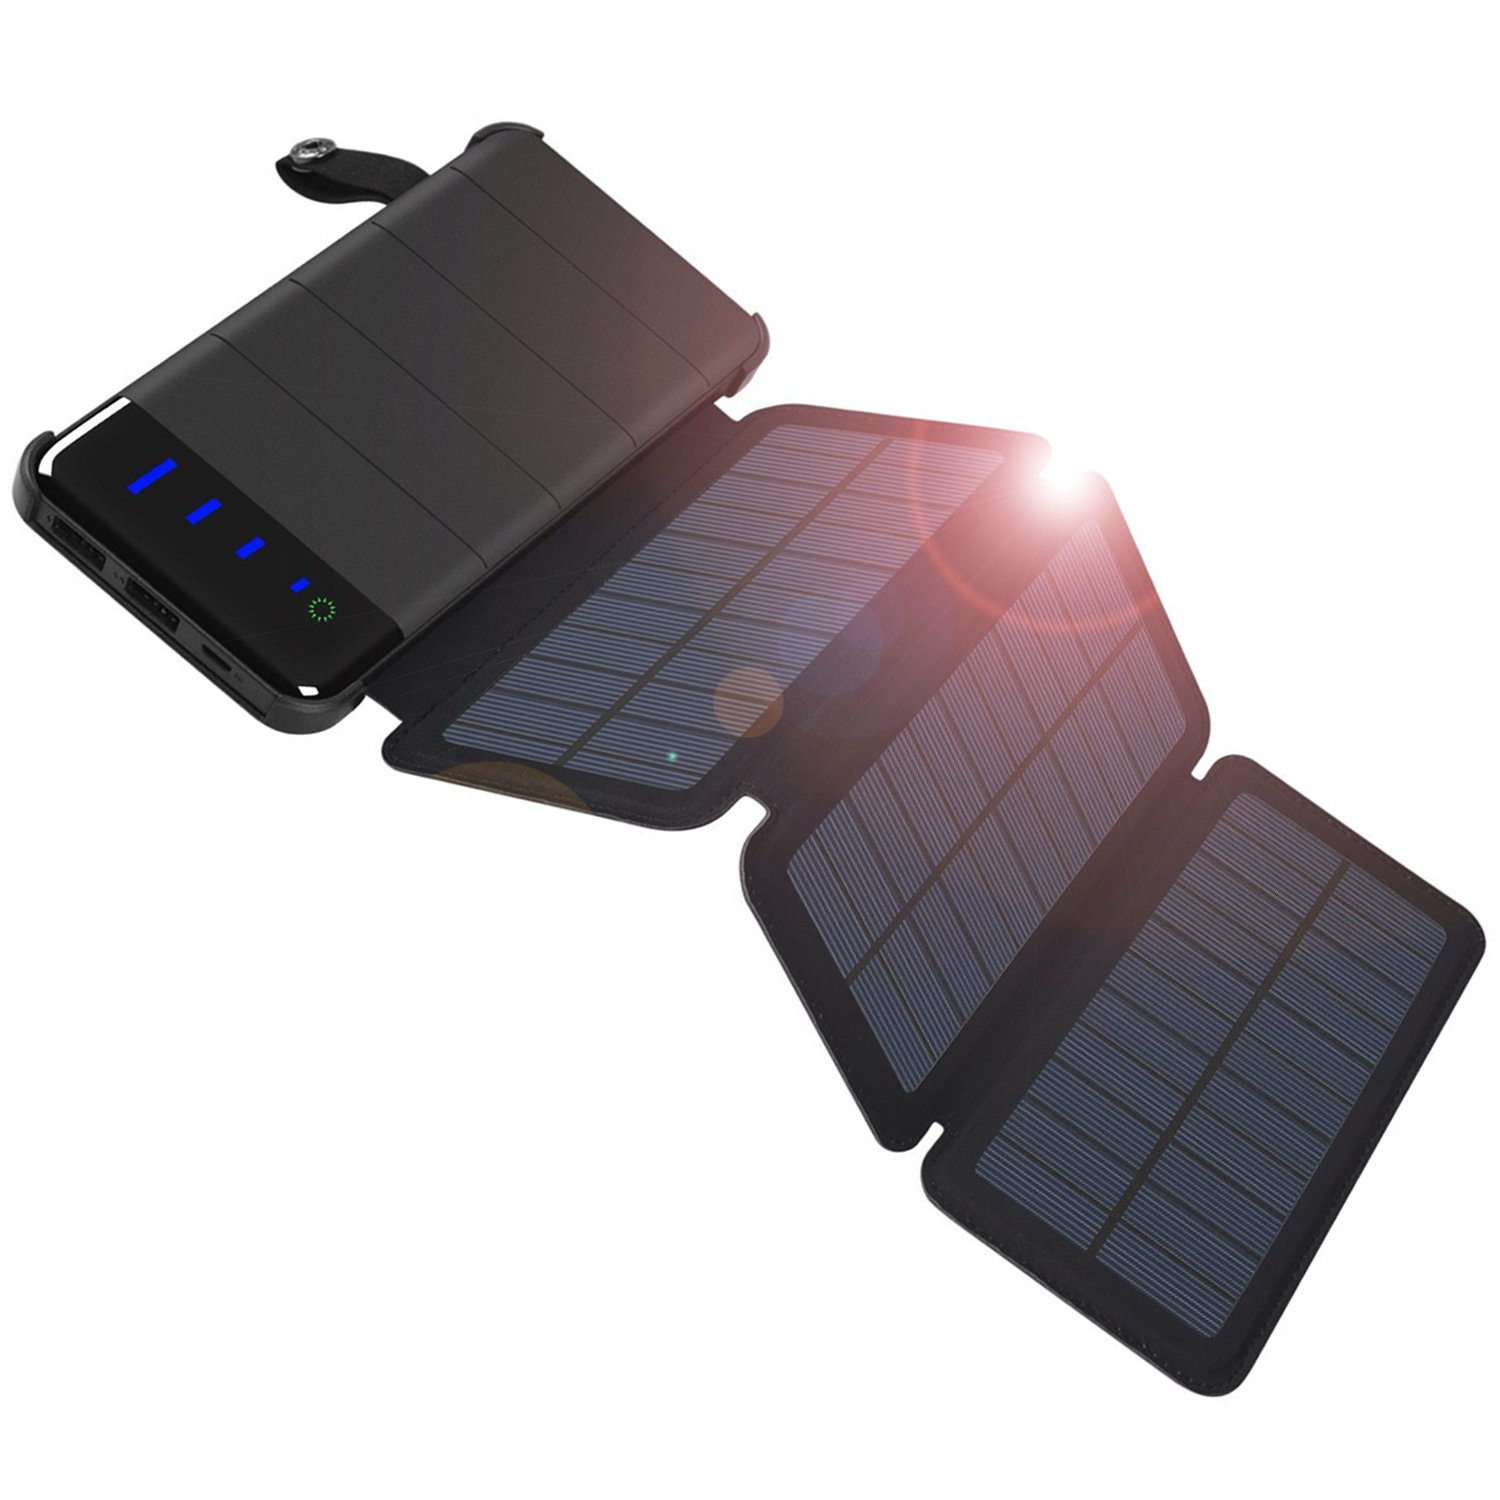 COOPOW 10000mAh Fast Solar Charger, Detachable Design with 3 High Efficiency Foldable Panels and LED Light for iPhone X/8/7/6s plus, Samsung and more Smart phone, Outdoor Camping, Travelling